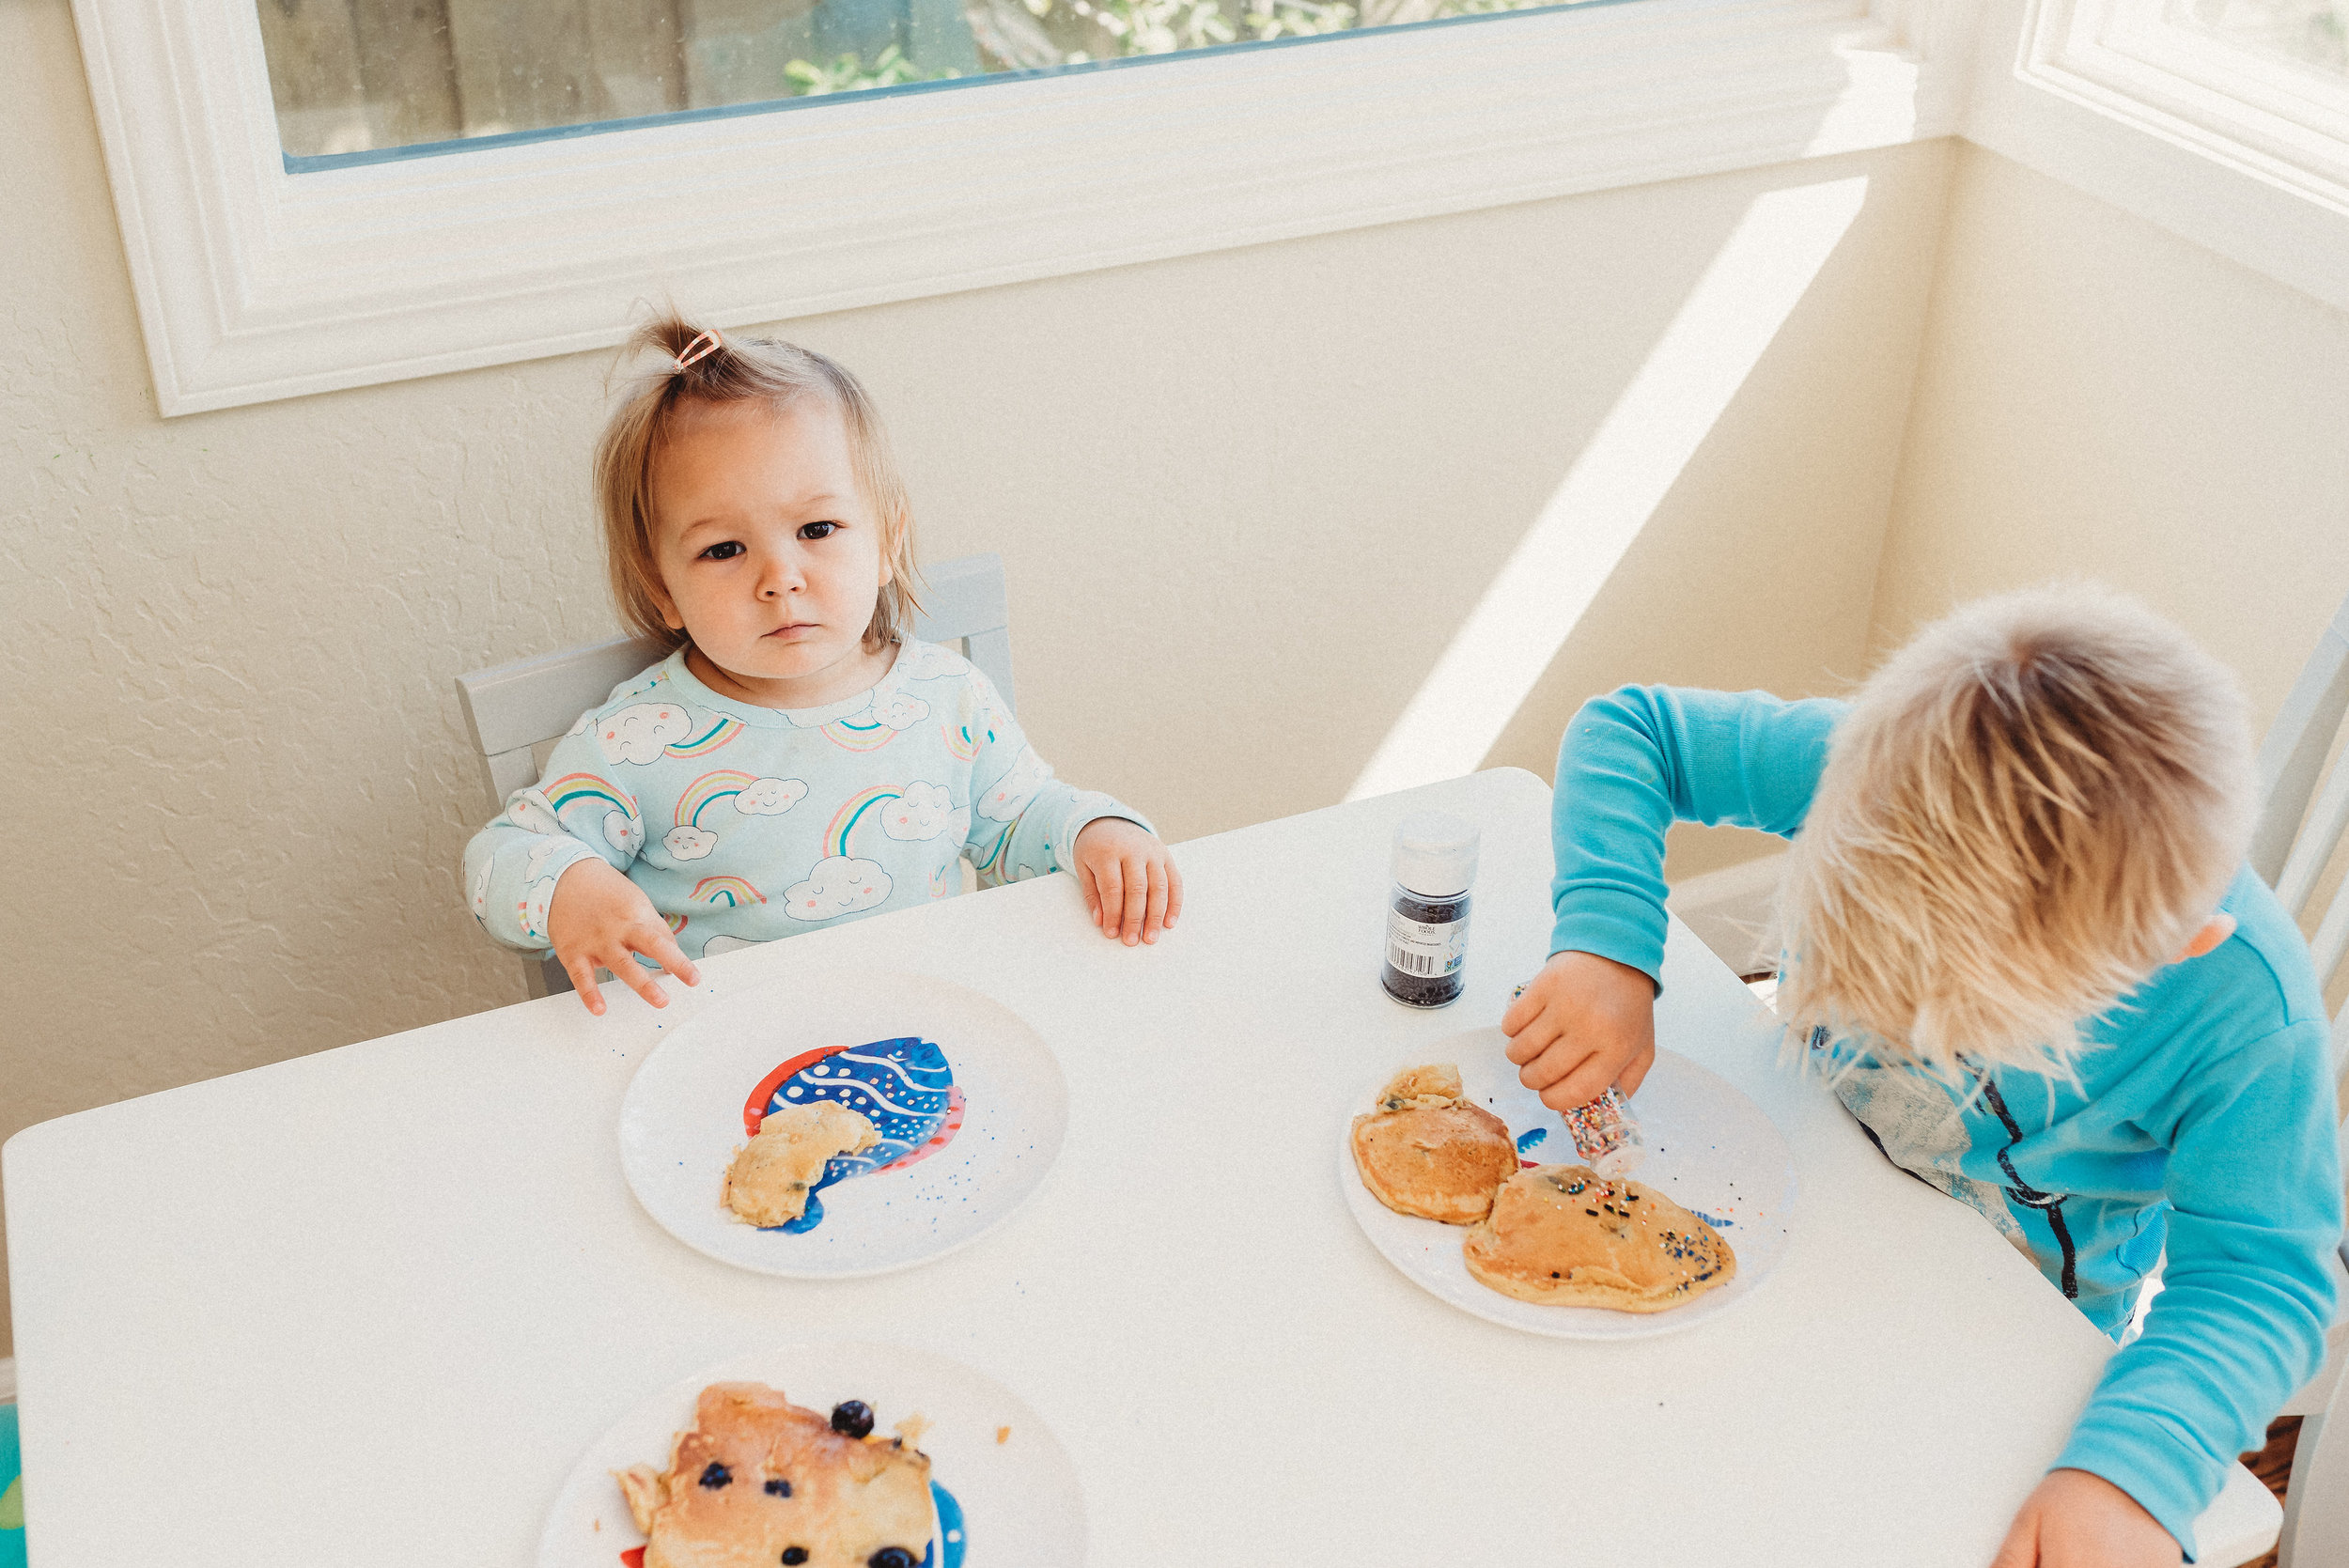 family pancakes morning routine mom of two toddlers pj mornings family time quality time30.jpg